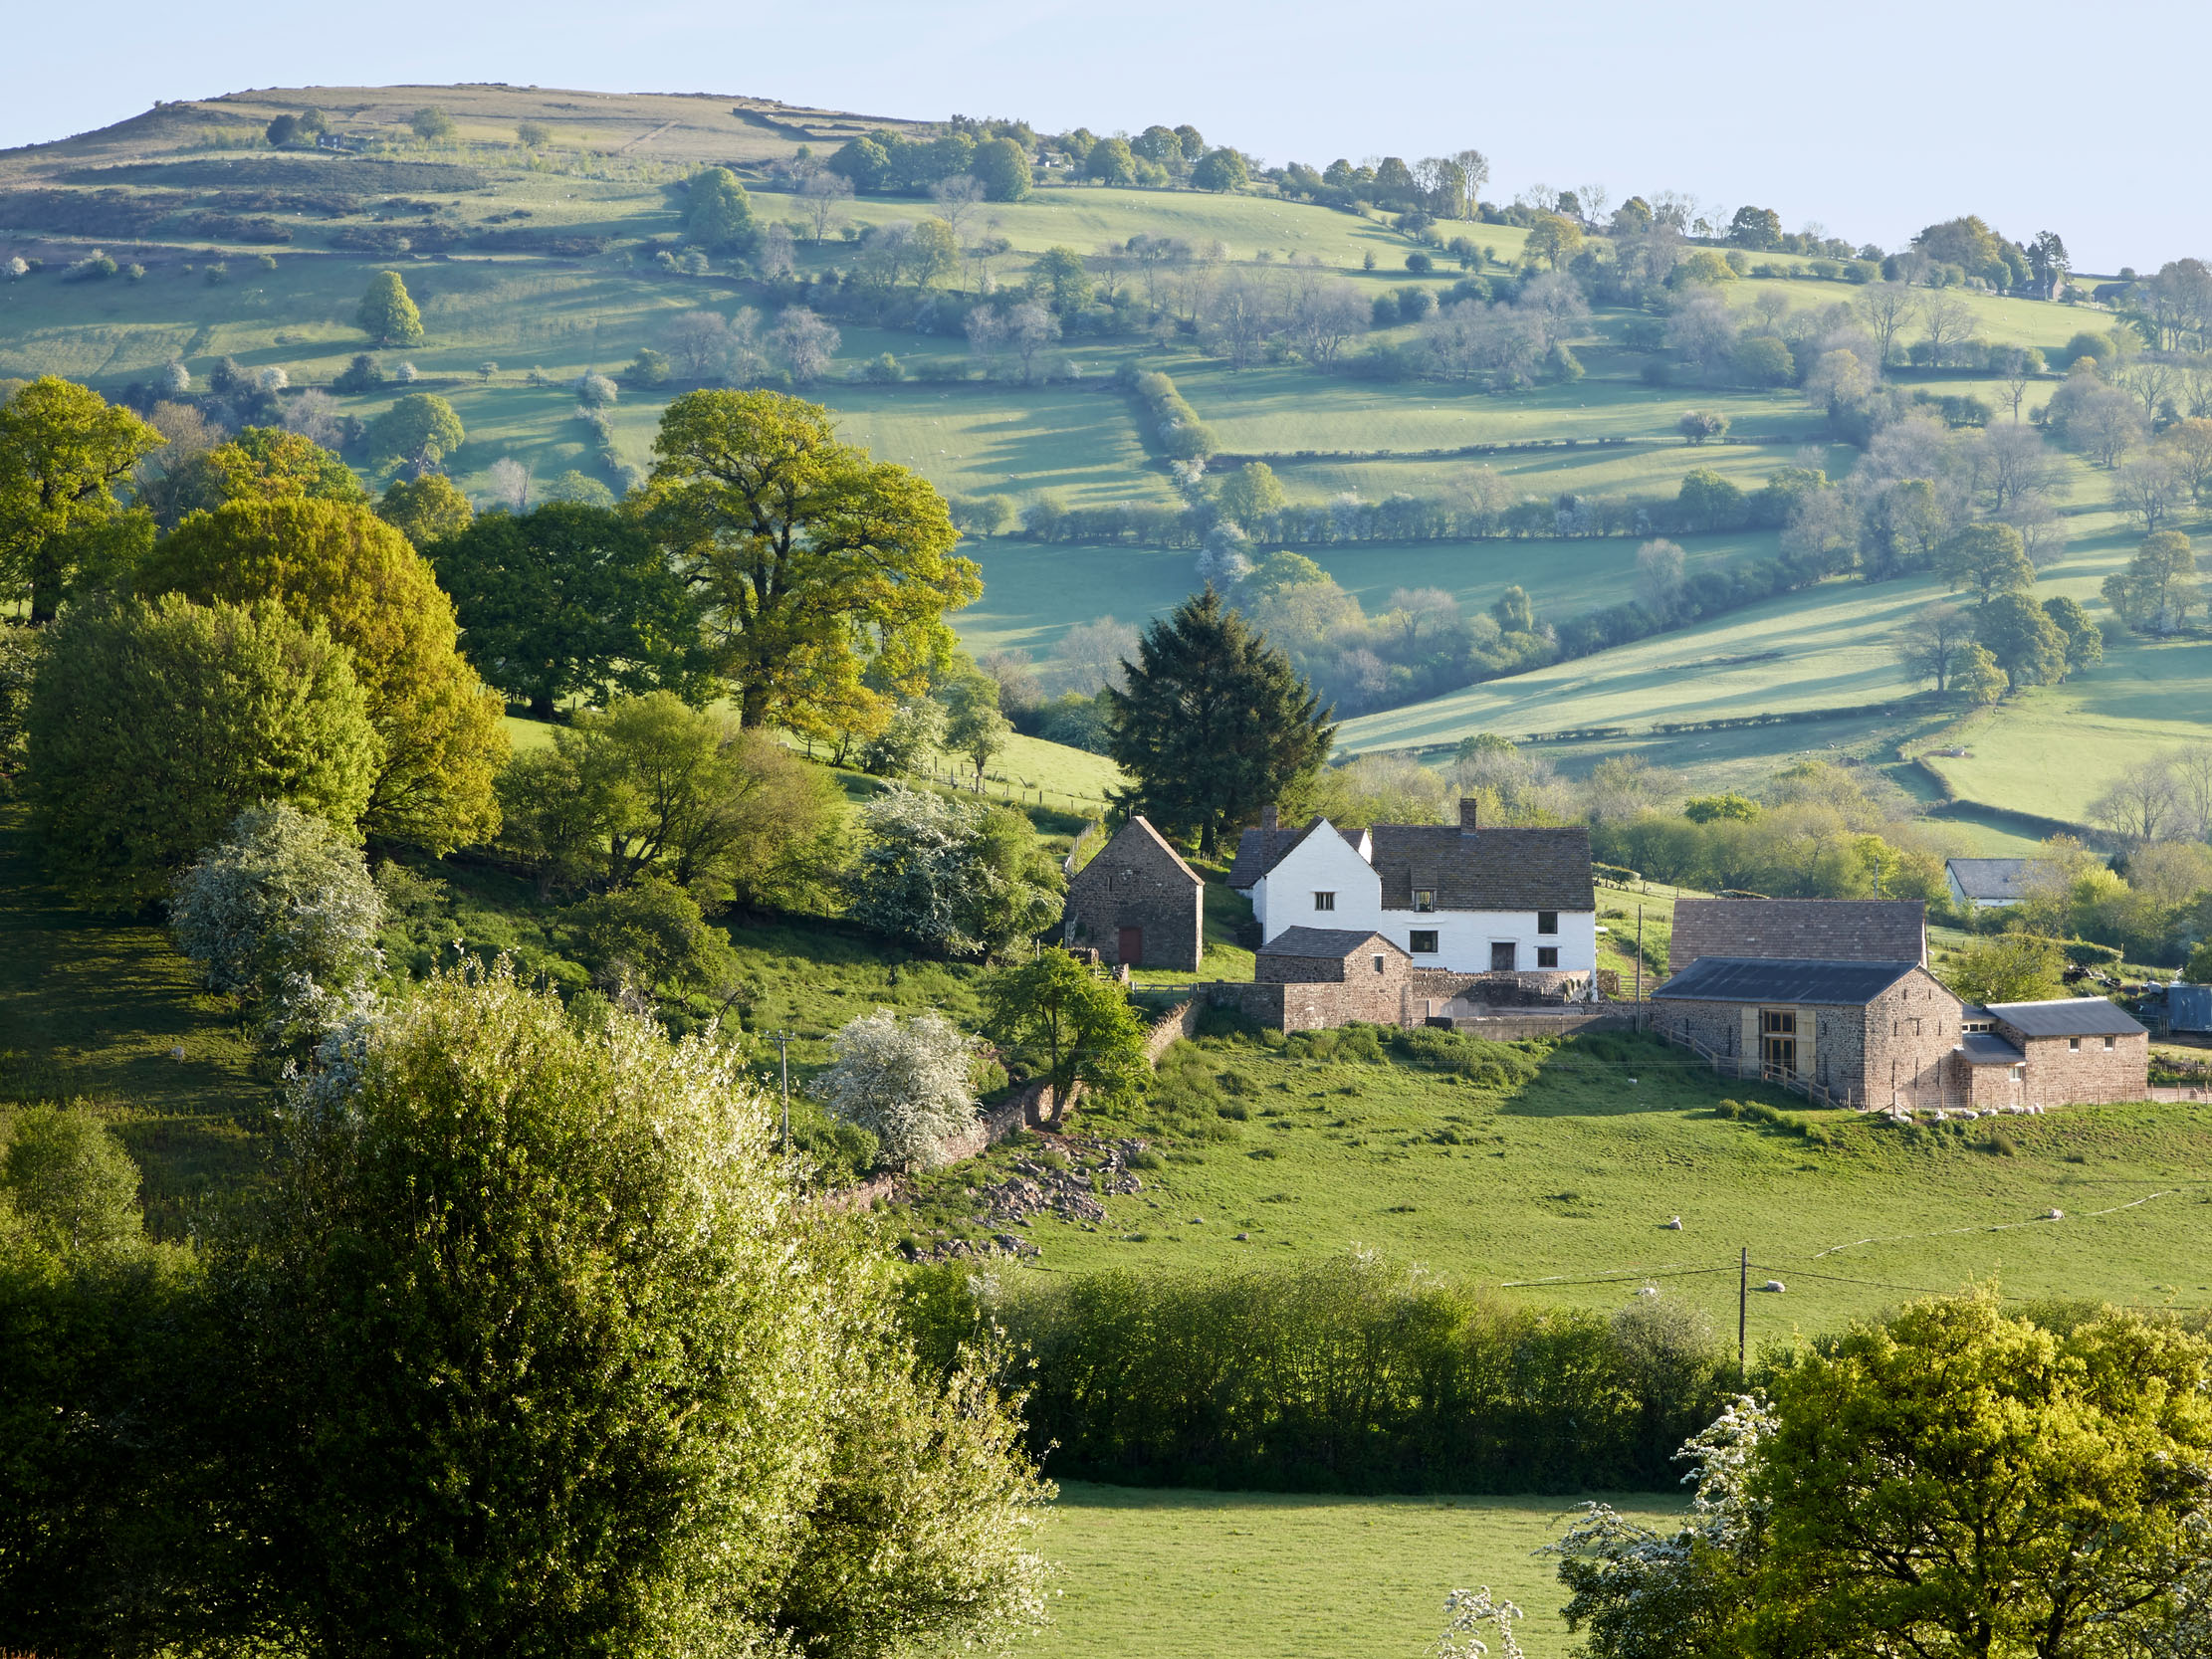 Llwyn Celyn: One of the most important medieval homes in Britain — yet one where, wonderfully, you can book family holiday